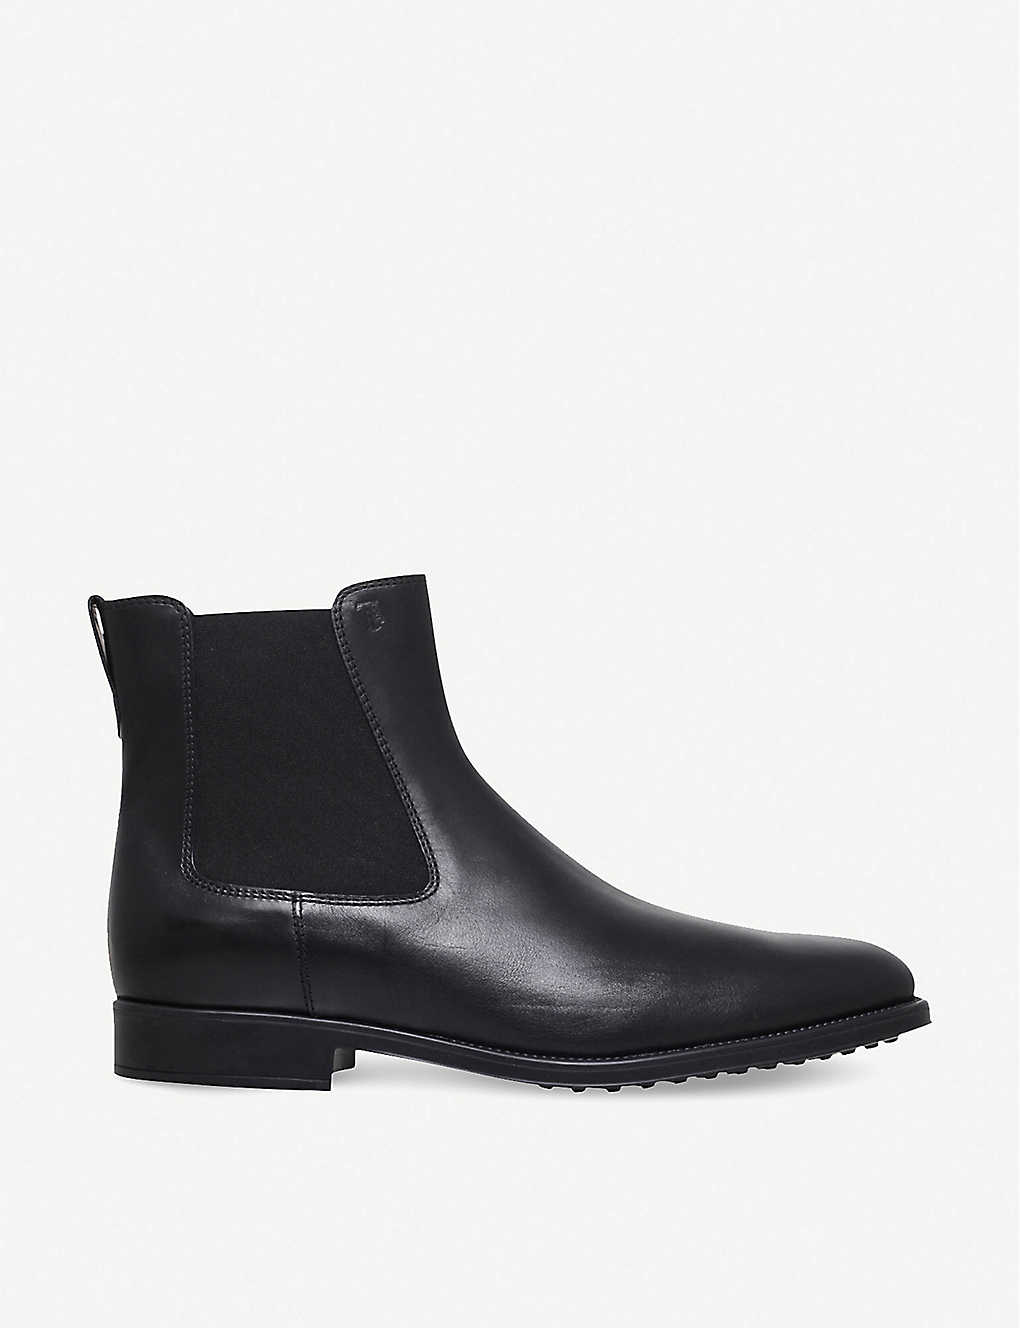 91975293ae4f06 Classic leather Chelsea boots - Black ...